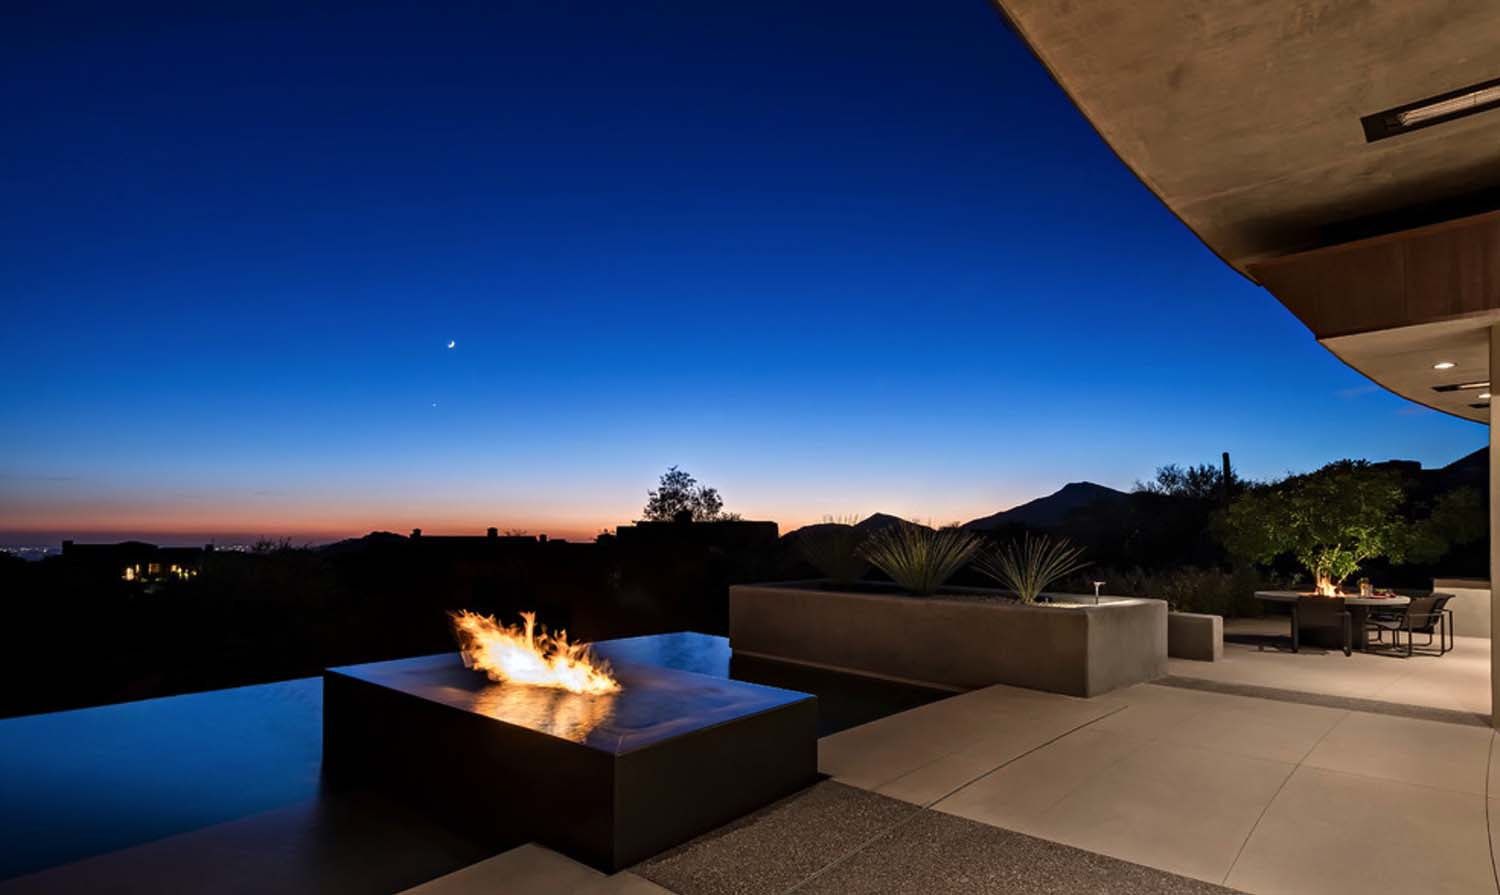 contemporary-desert-home-tate-studio-architects-25-1-kindesign